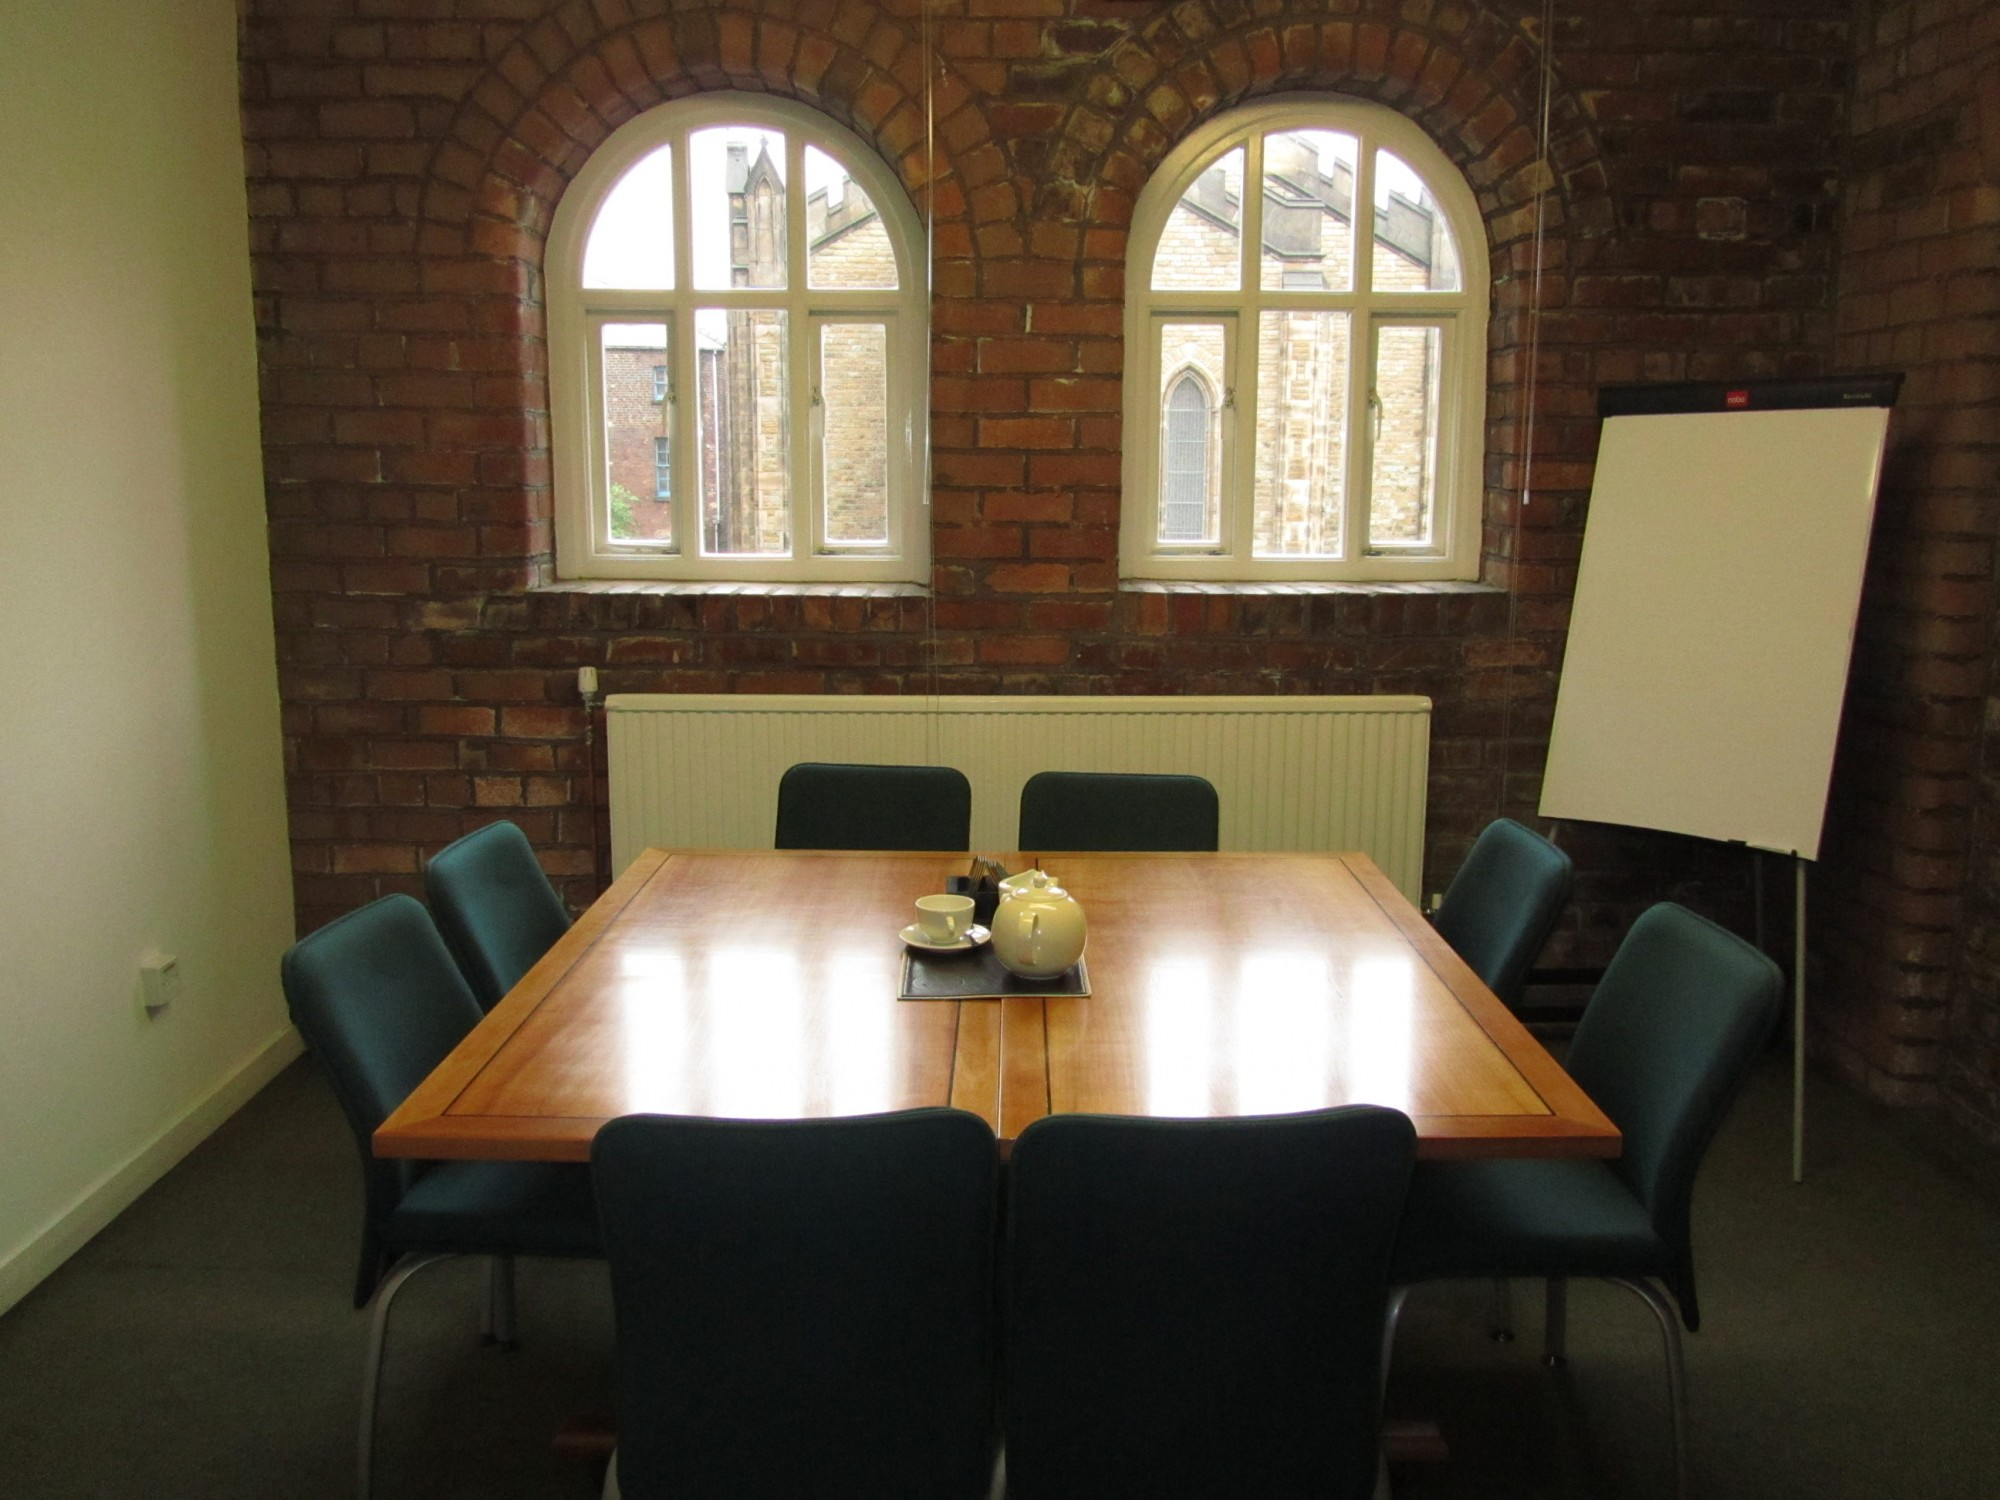 Meeting and Interview Rooms